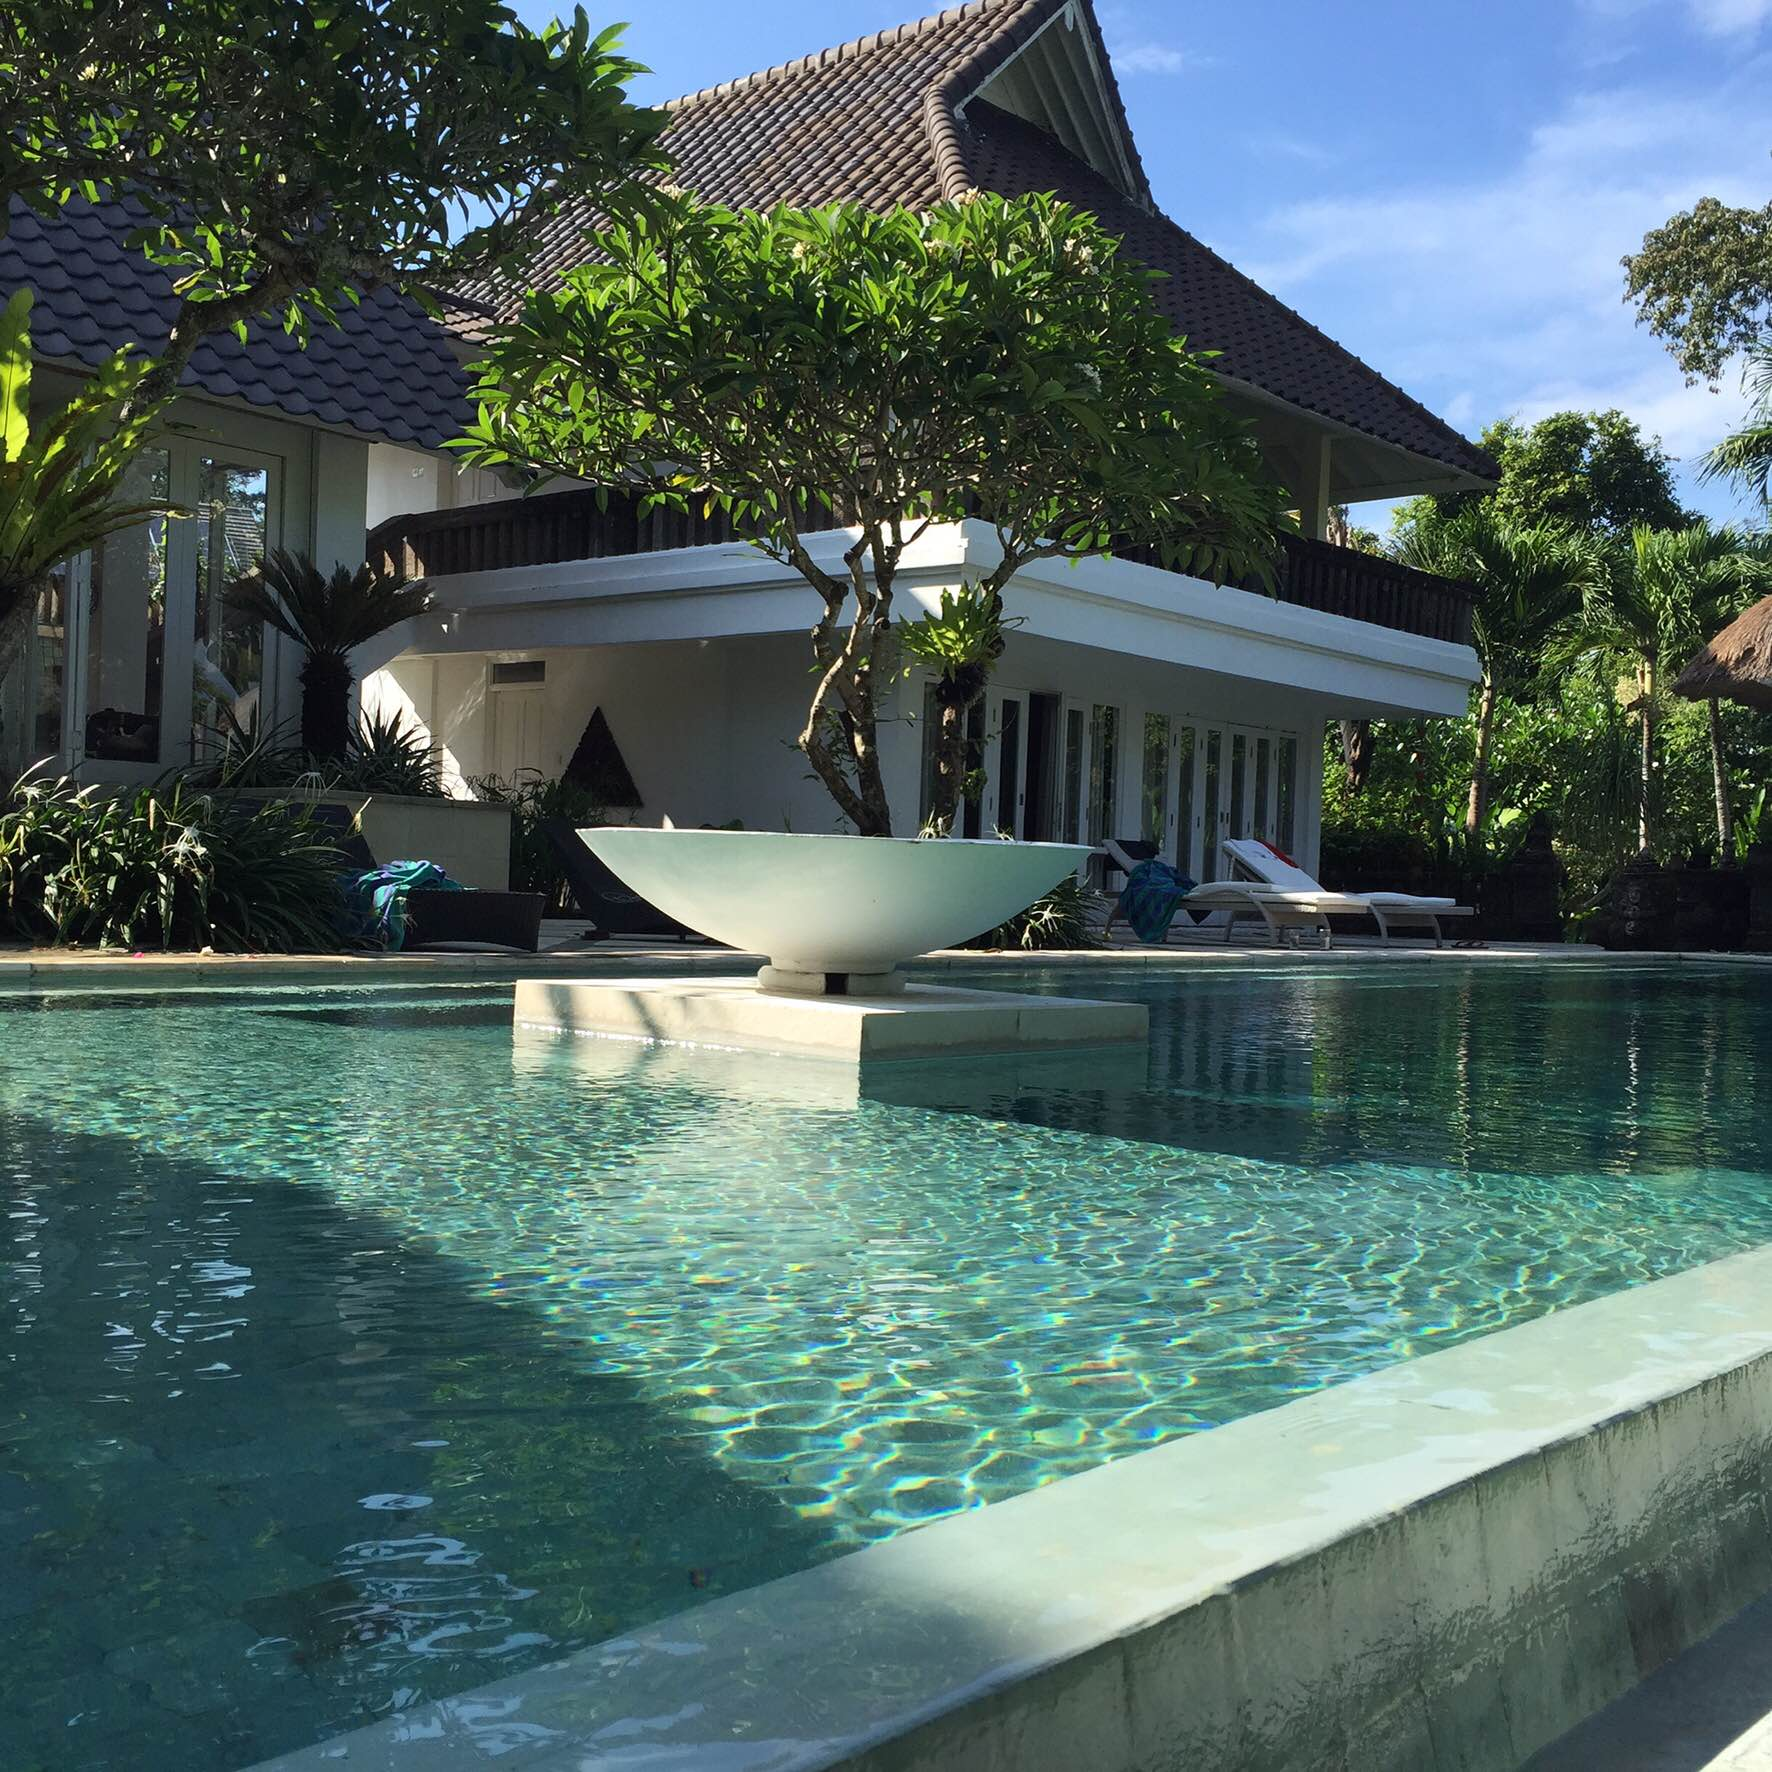 Our Villa at Seminyak...check out the pool!